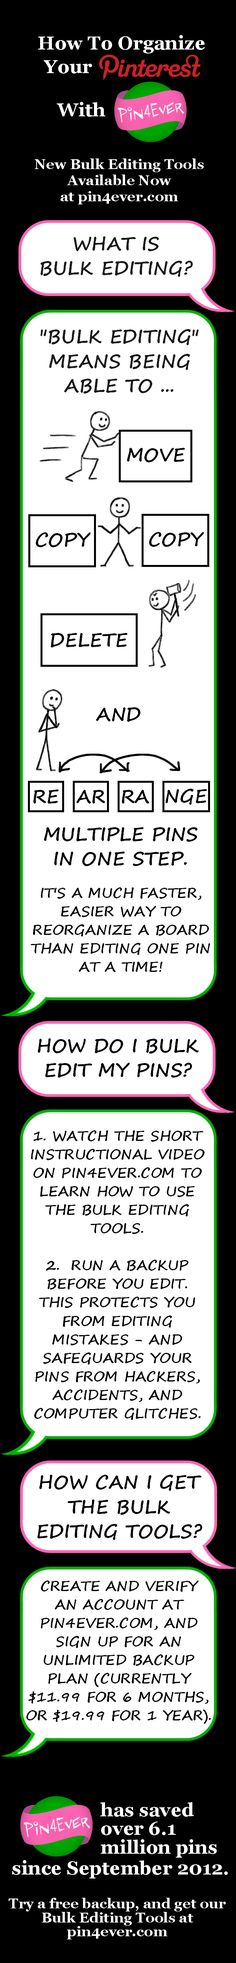 Back up and organize your Pinterest pins with Pin4Ever! We've helped our customers save over 72 million pins since September 2012. Visit www.pin4ever.com to get our FREE Bulk Editing Tools!